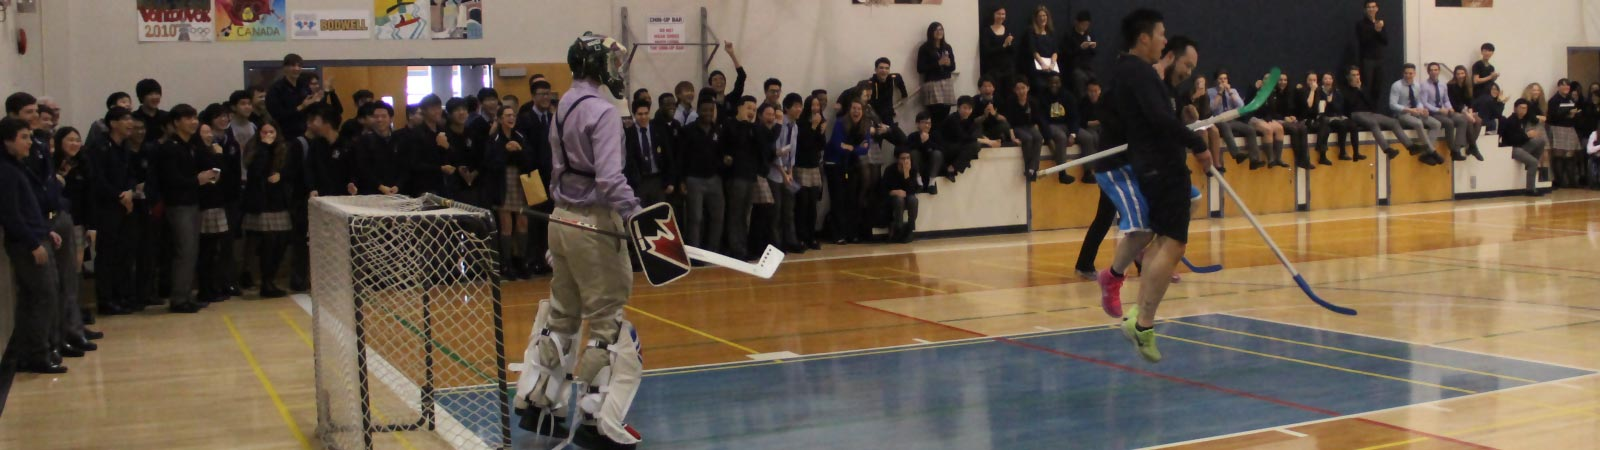 RCMP Floor Hockey Game Versus Bodwell Staff